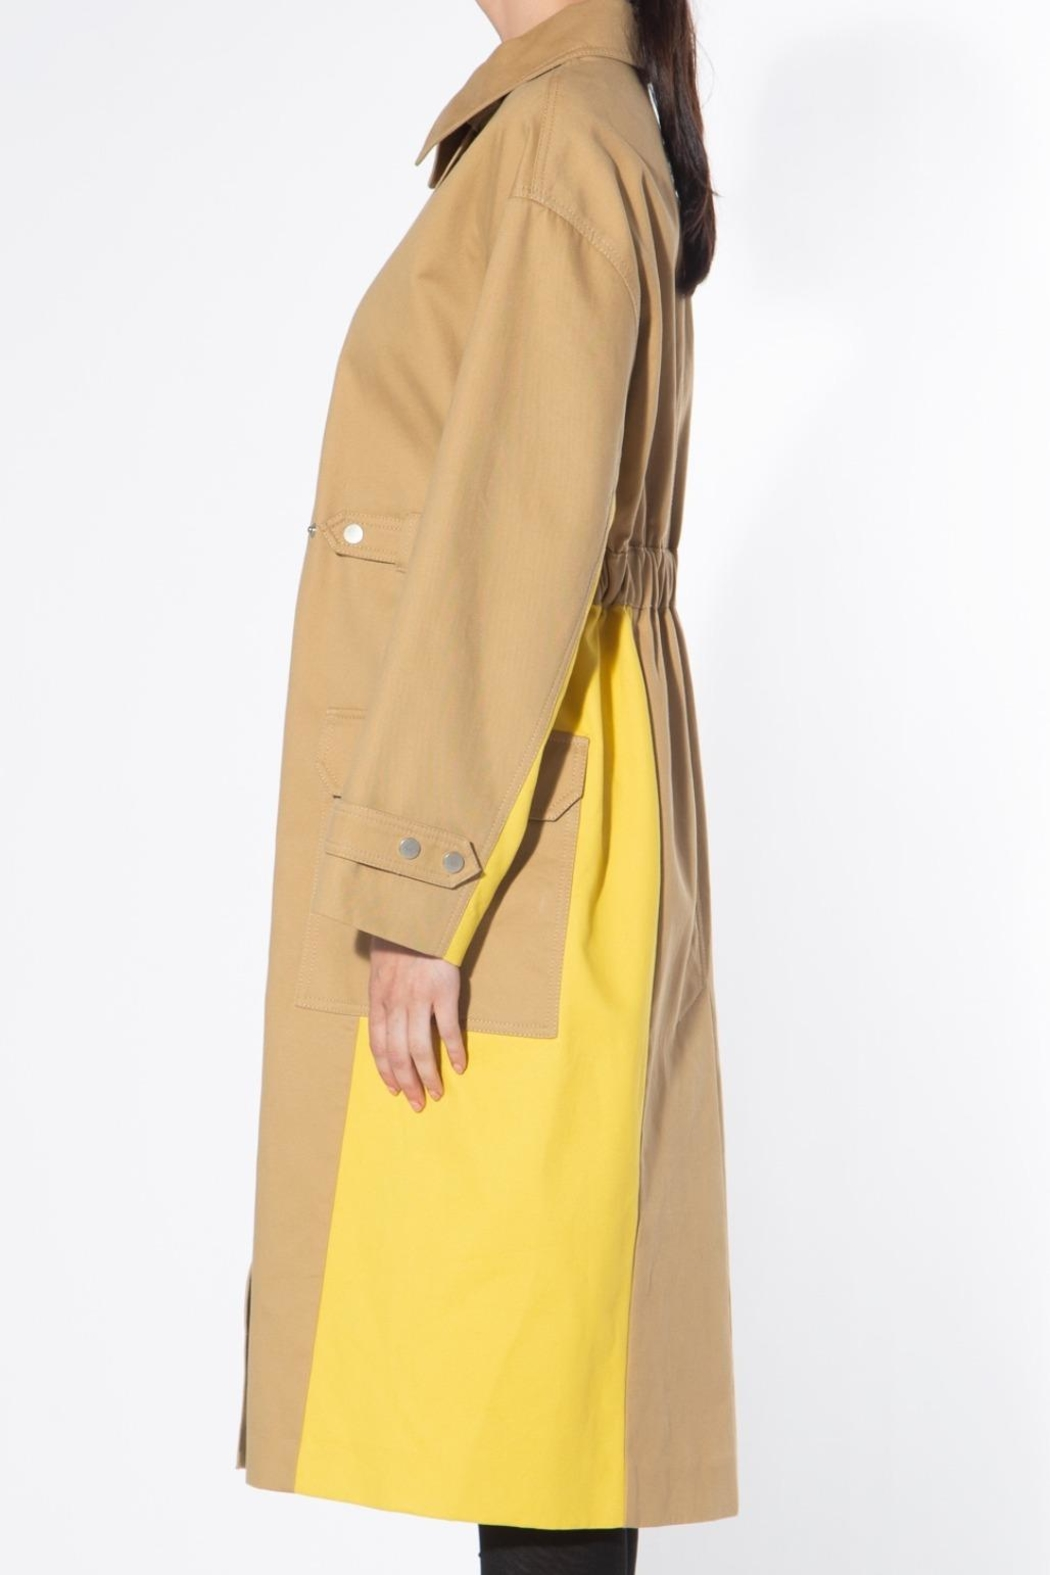 BEULAH STYLE Two Tone Trench Coat - Back Cropped Image